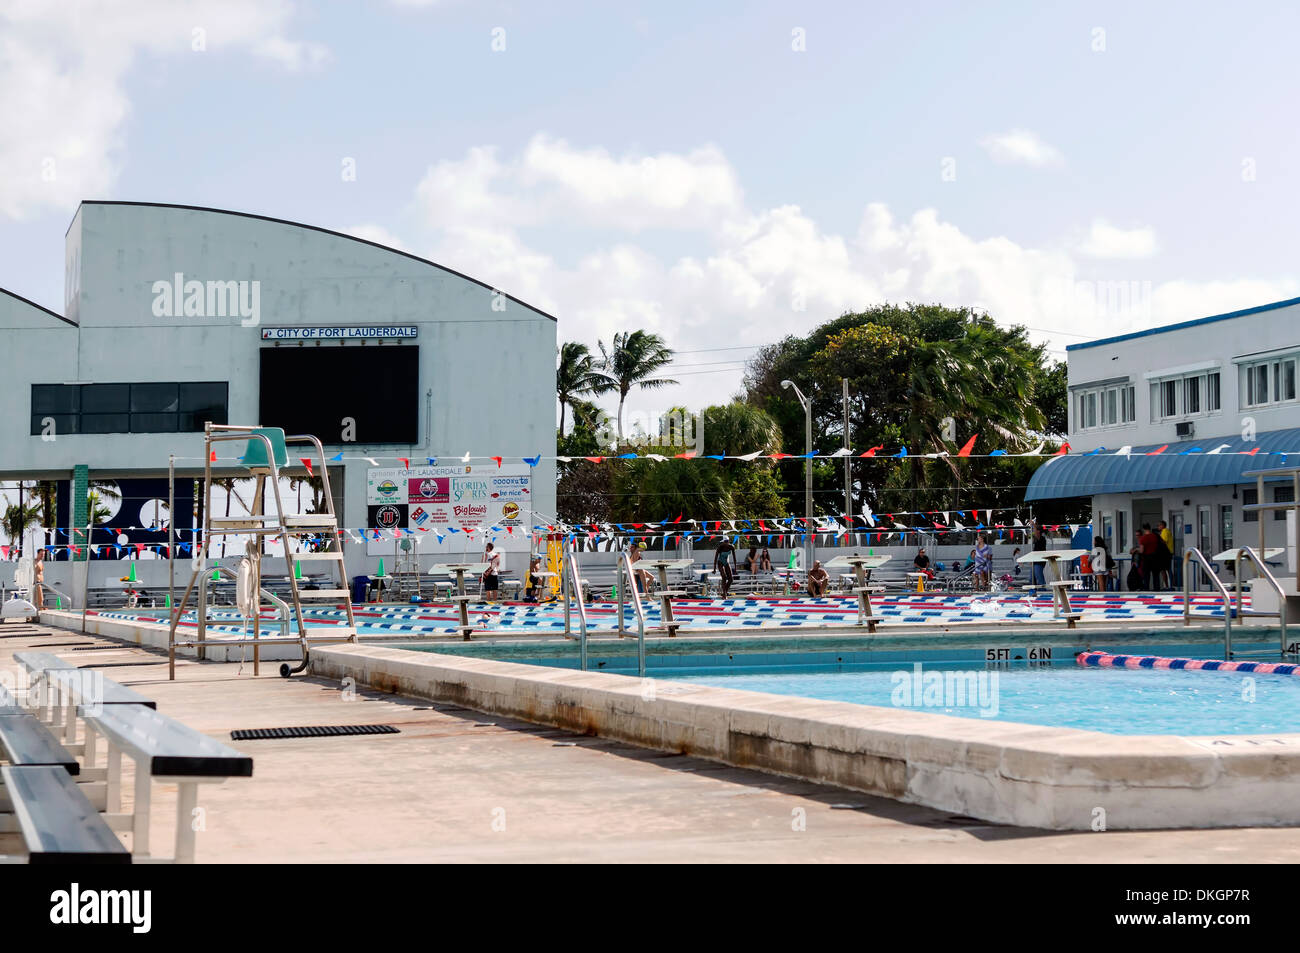 Aquatic Center Stock Photos Aquatic Center Stock Images Alamy